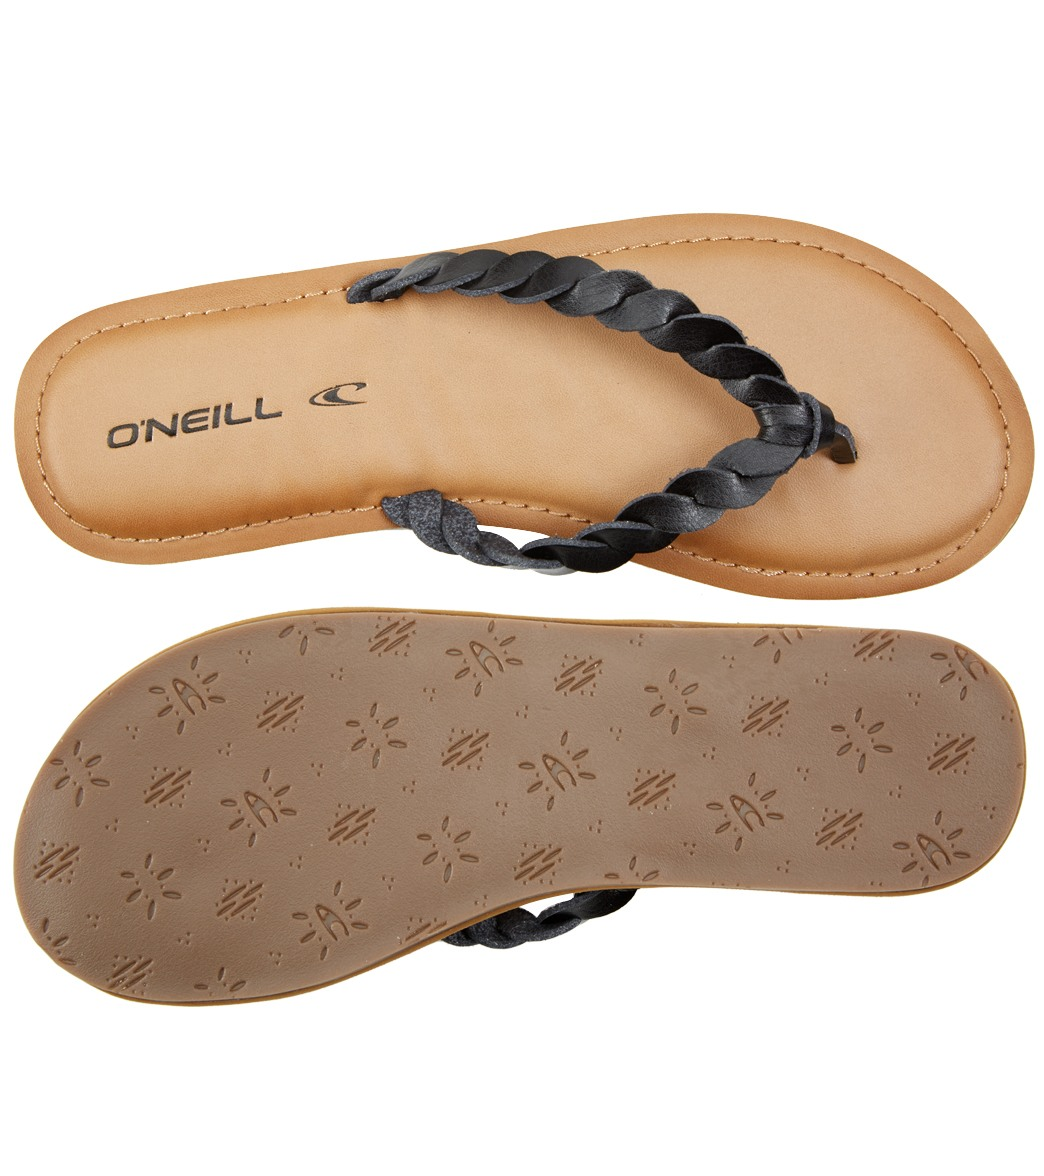 1211d6beb O Neill Women s Lucille Braided Leather Flip Flop at SwimOutlet.com